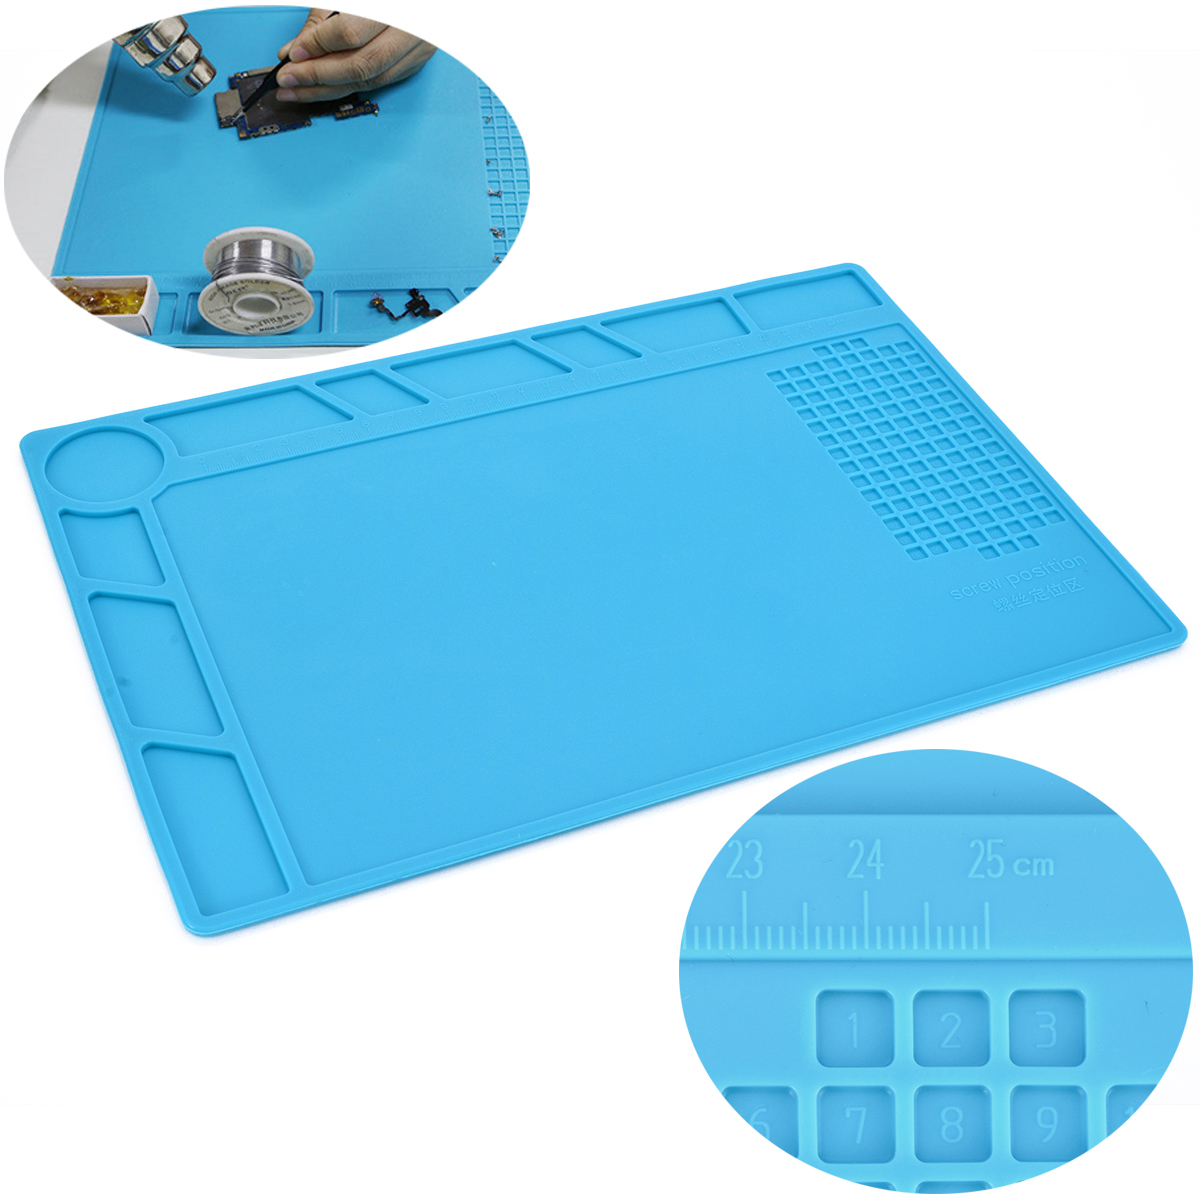 1pc Heat Resistant Pad Multifunction Soldering Mat Anti-corrosive Repair Insulation Silicone Mat 35x25cm silicone heat resistant mat orange